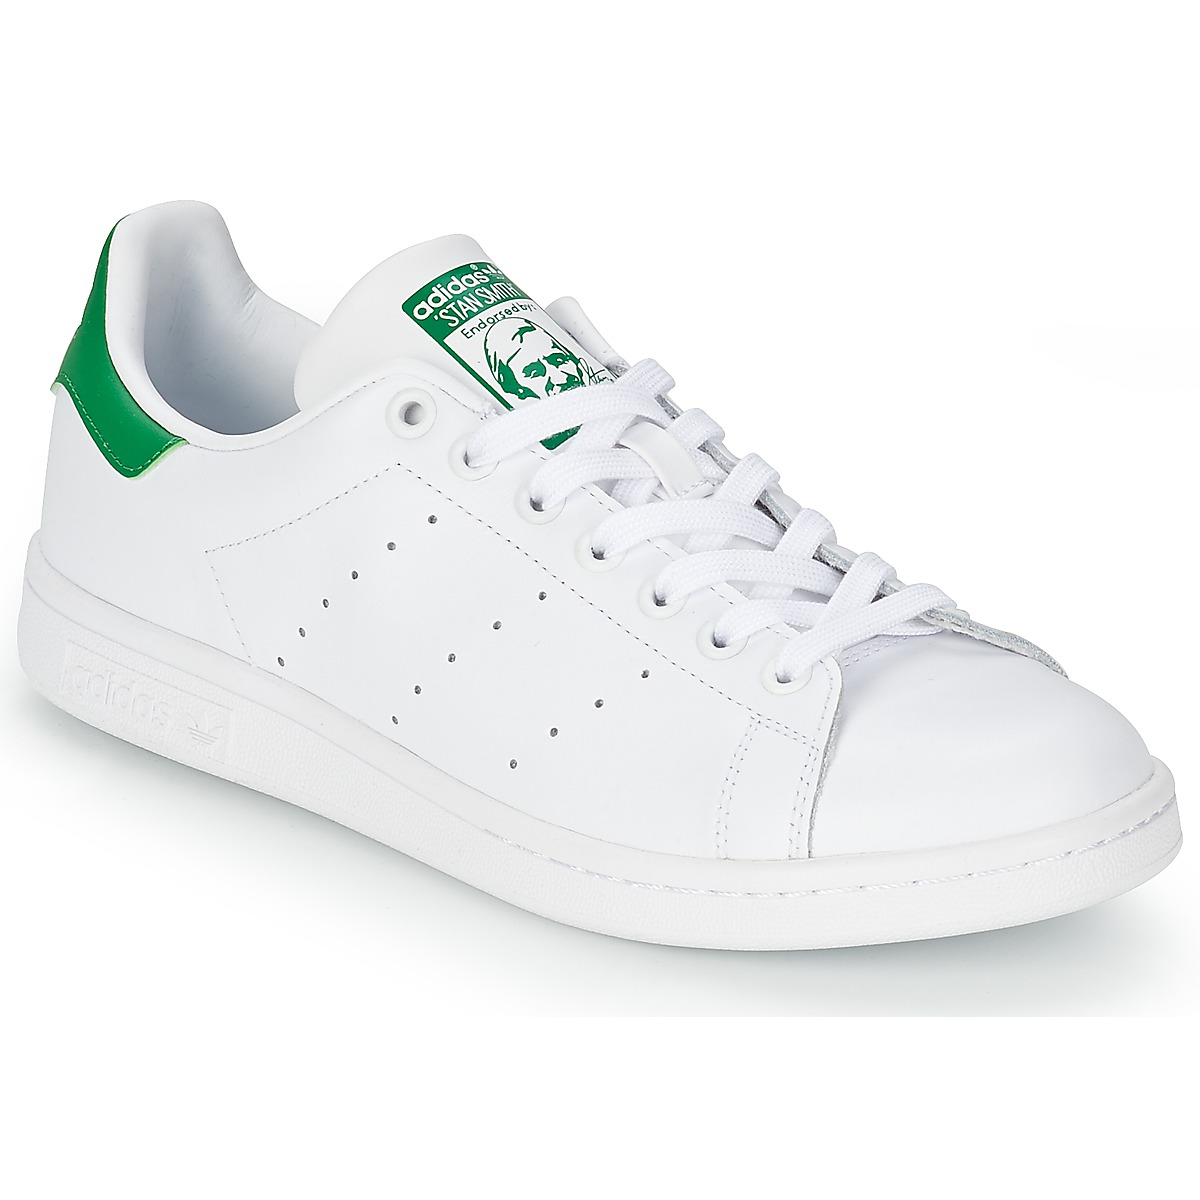 adidas Originals STAN SMITH Weiss / Grün